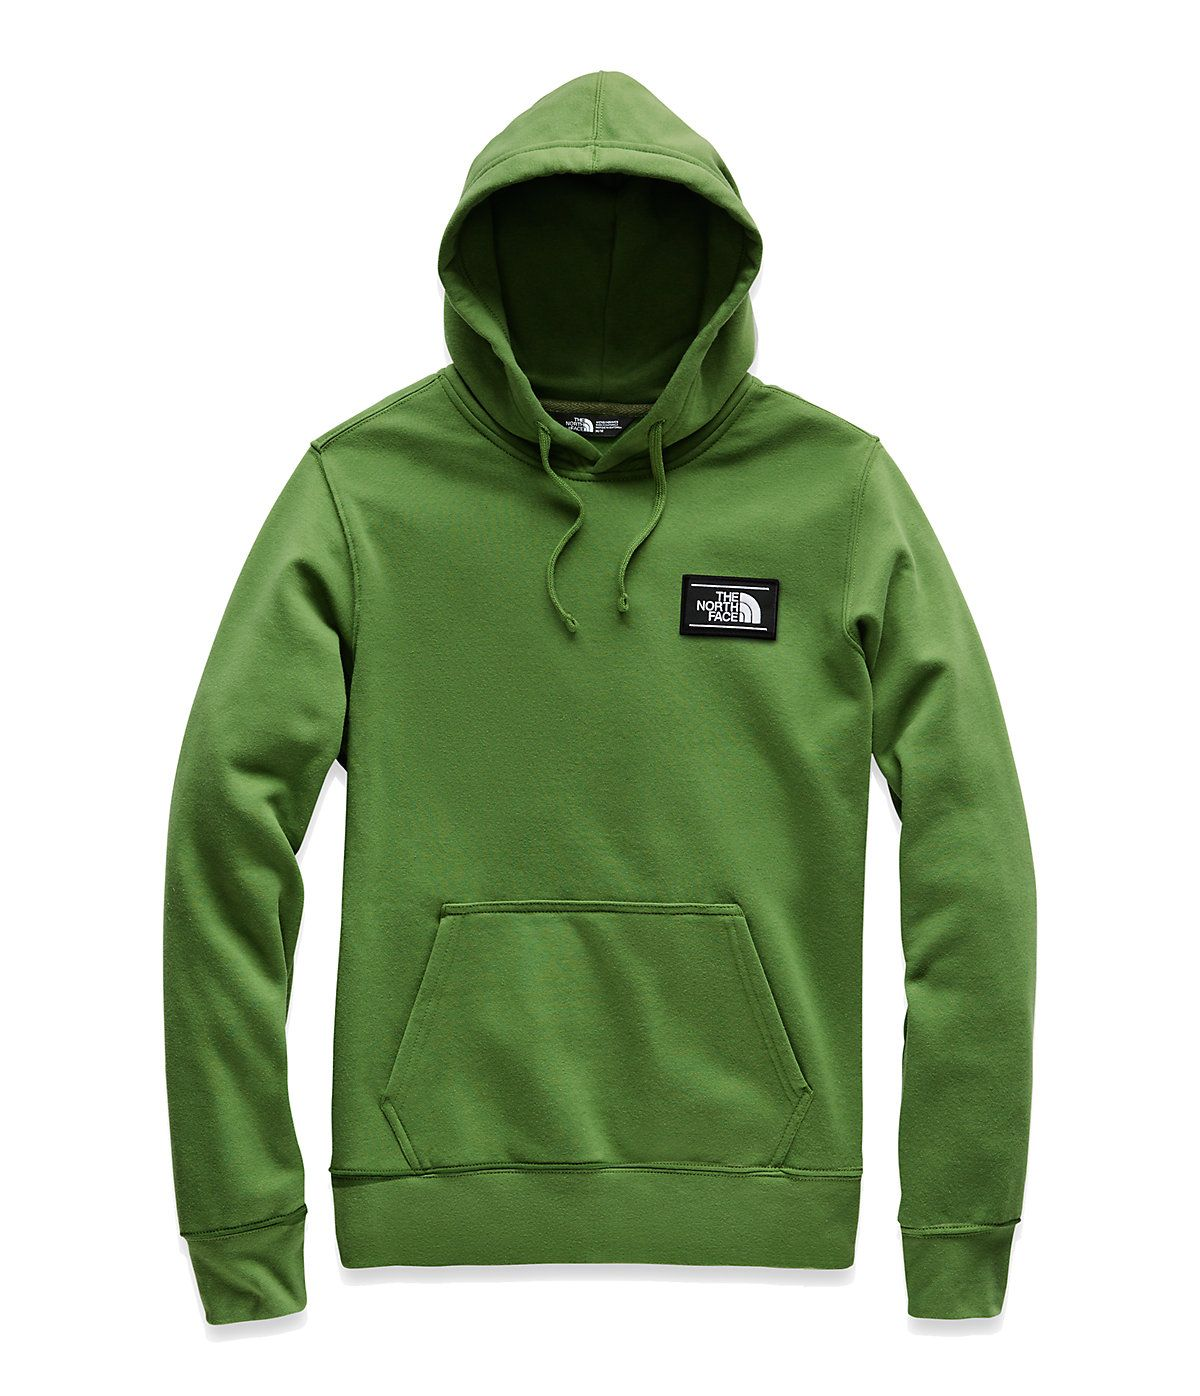 bca1dc974921 The North Face Men s Bottle Source Pullover Hoodie in 2019 ...